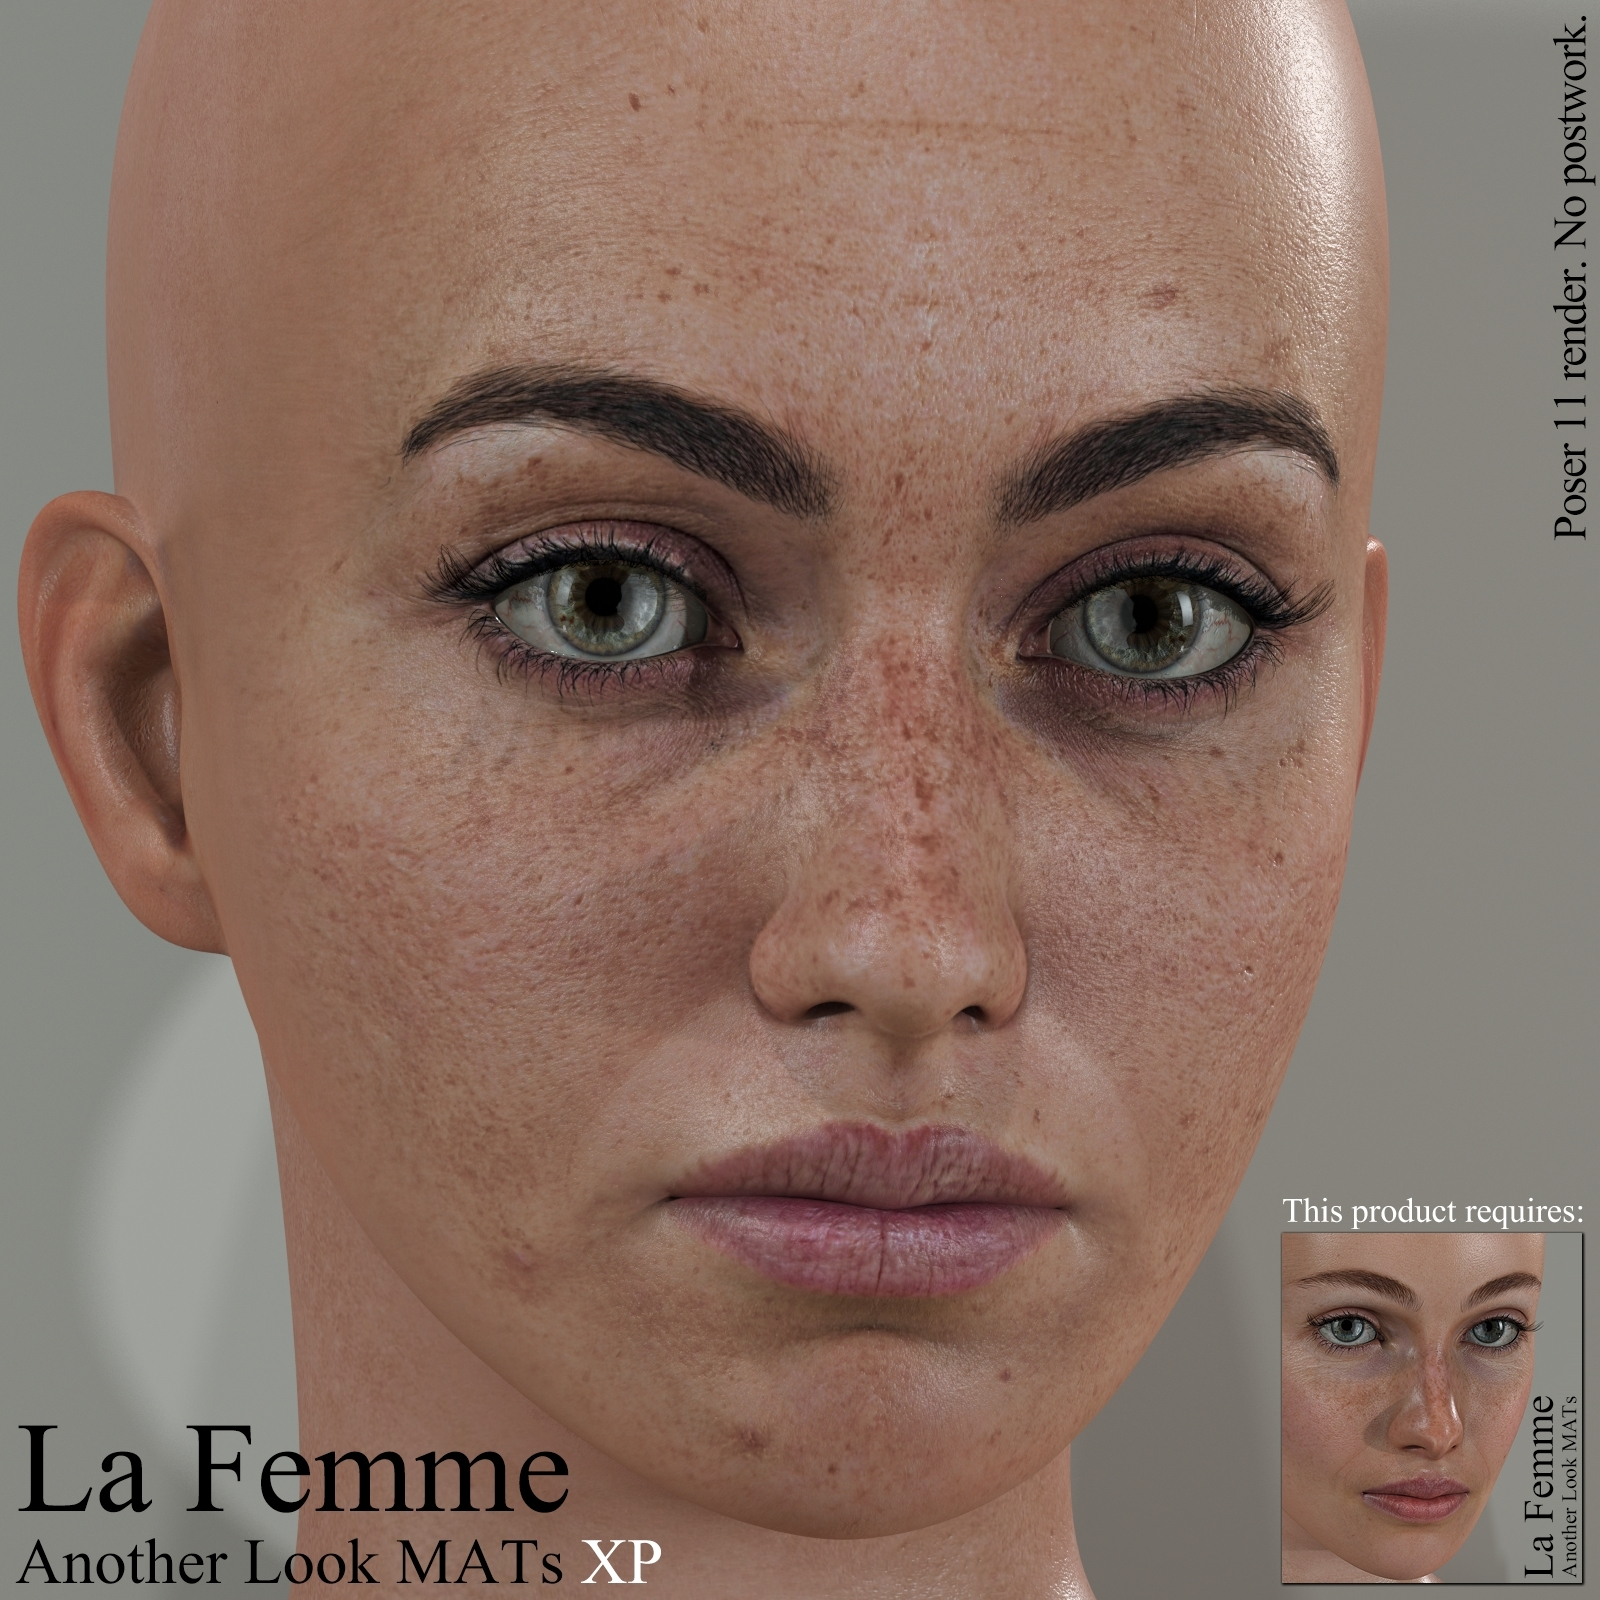 La Femme - Another Look MATs XP by 3Dream